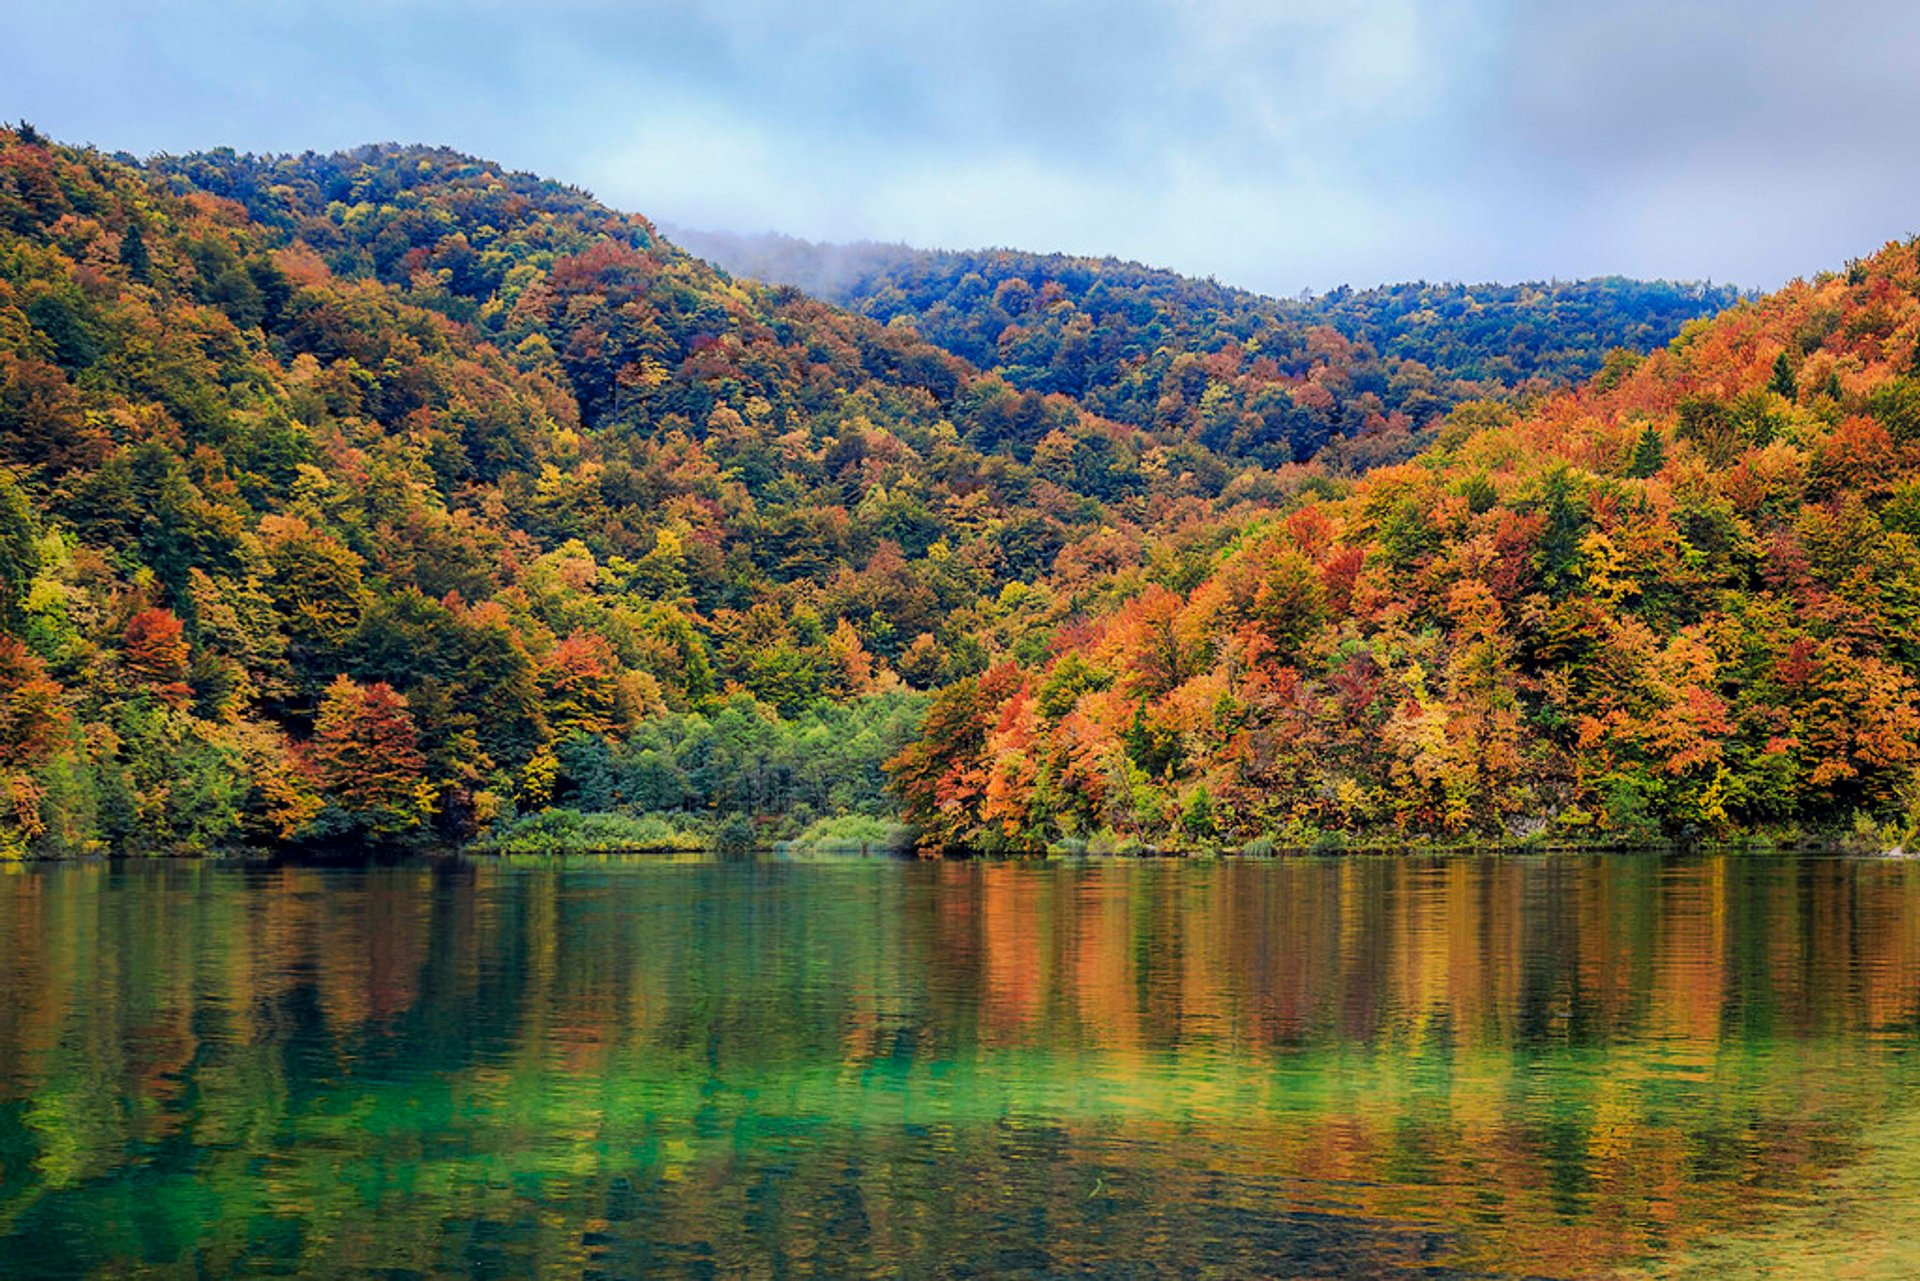 Autumnal Plitvice Lakes in Croatia 2019 - Best Time